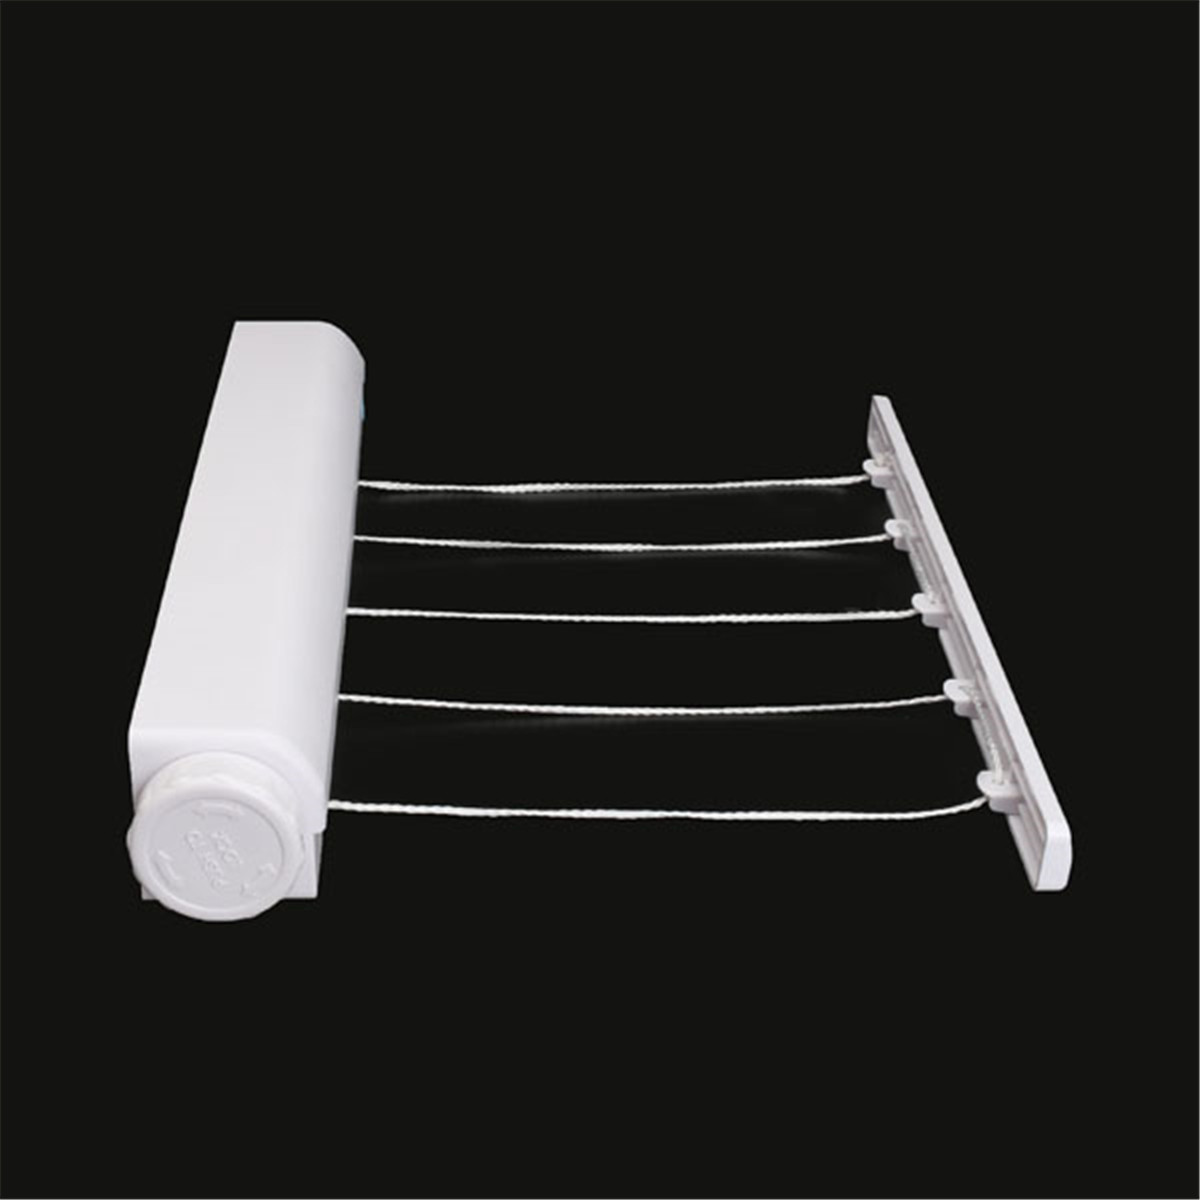 Clothes Line Drying Rack ABS Multi-Functional Telescopic Towel Stainless Steel Rack Clothesline Hotel Bathroom Accessories